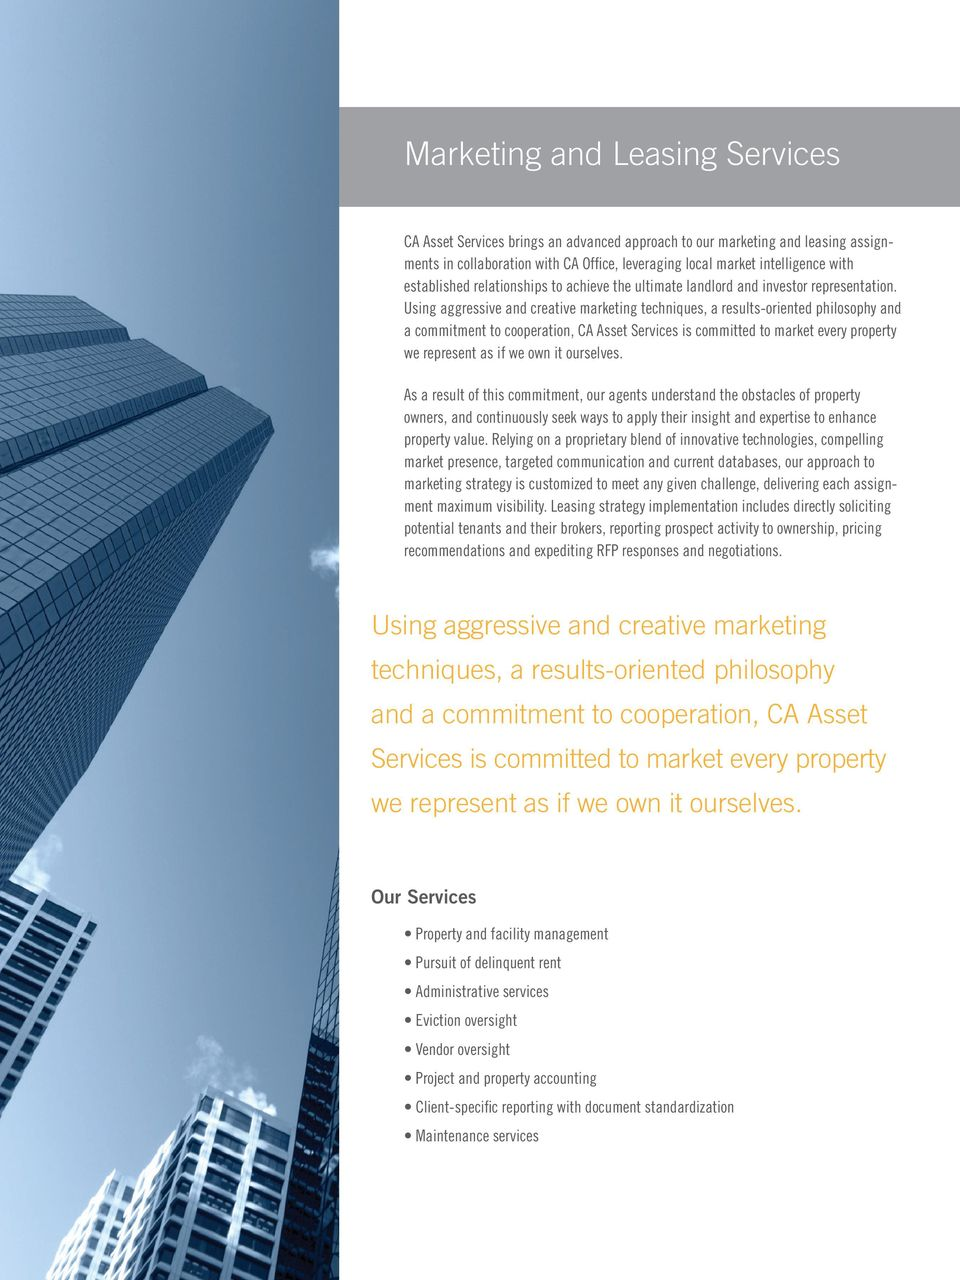 Using aggressive and creative marketing techniques, a results-oriented philosophy and a commitment to cooperation, CA Asset Services is committed to market every property we represent as if we own it